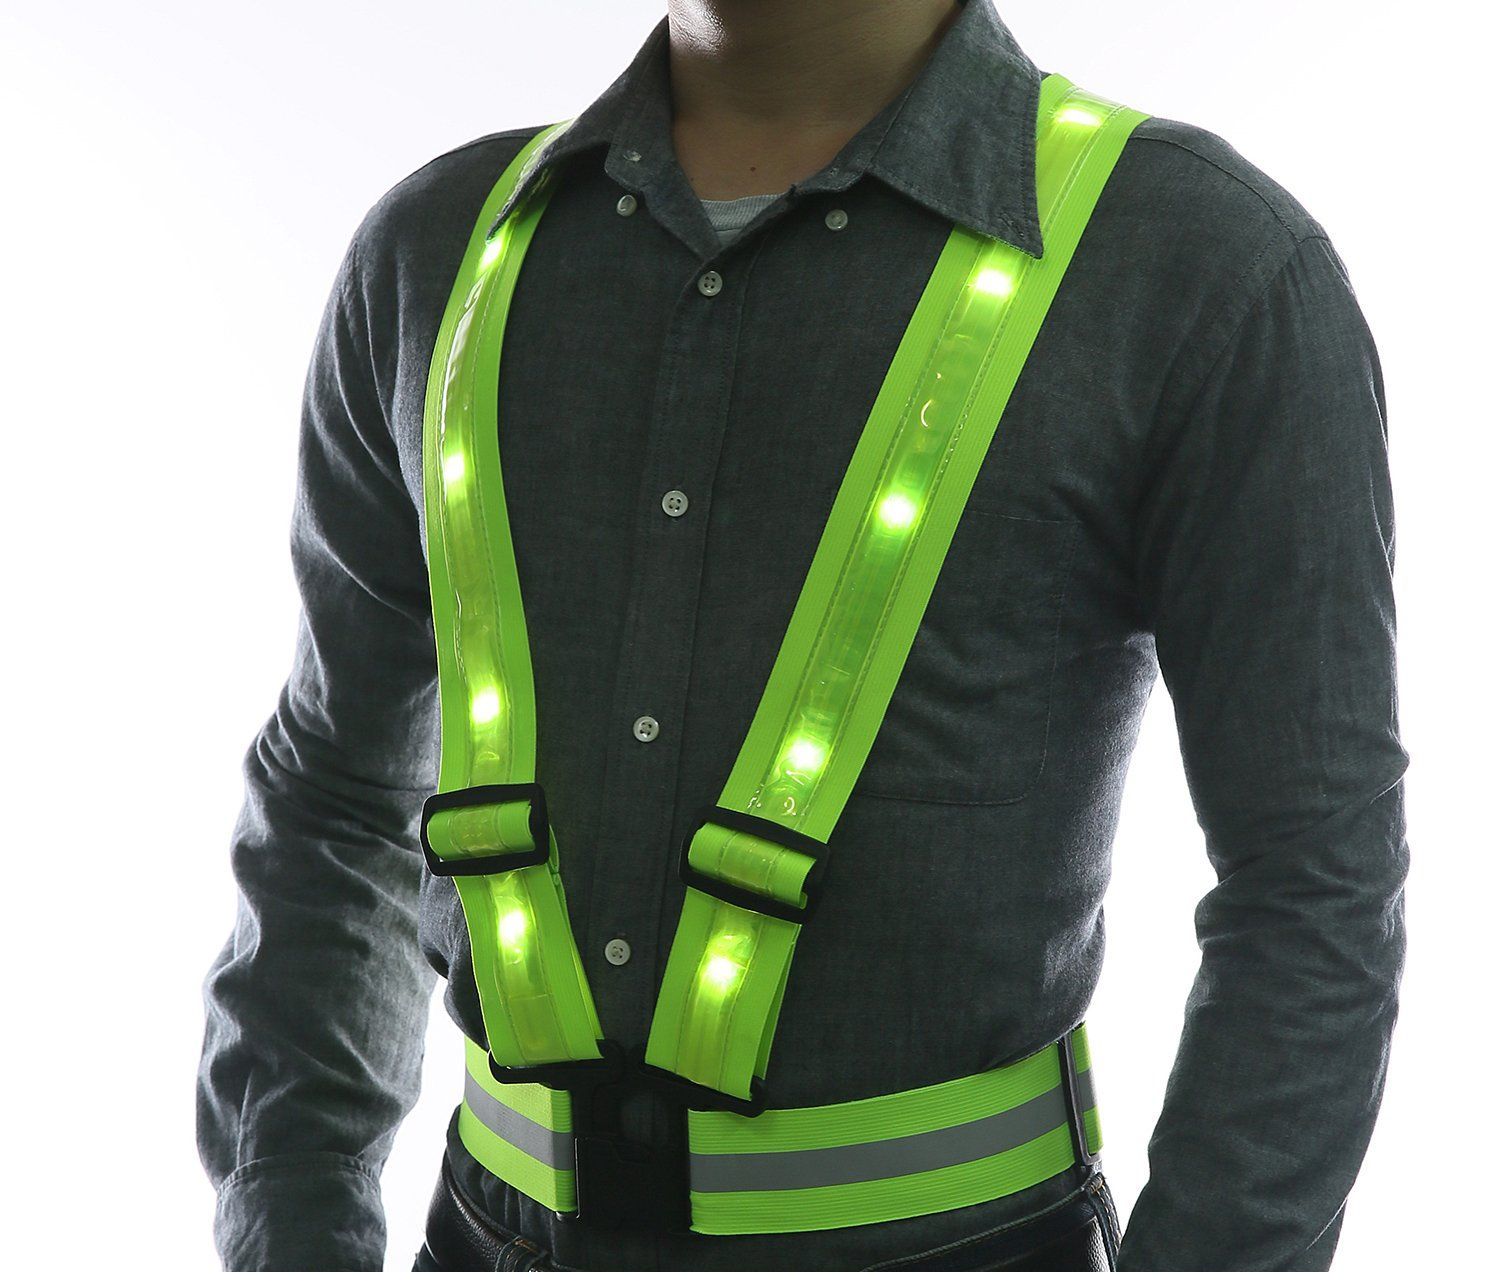 LED Reflective Safety Vest by GlowseenUSB Rechargeable